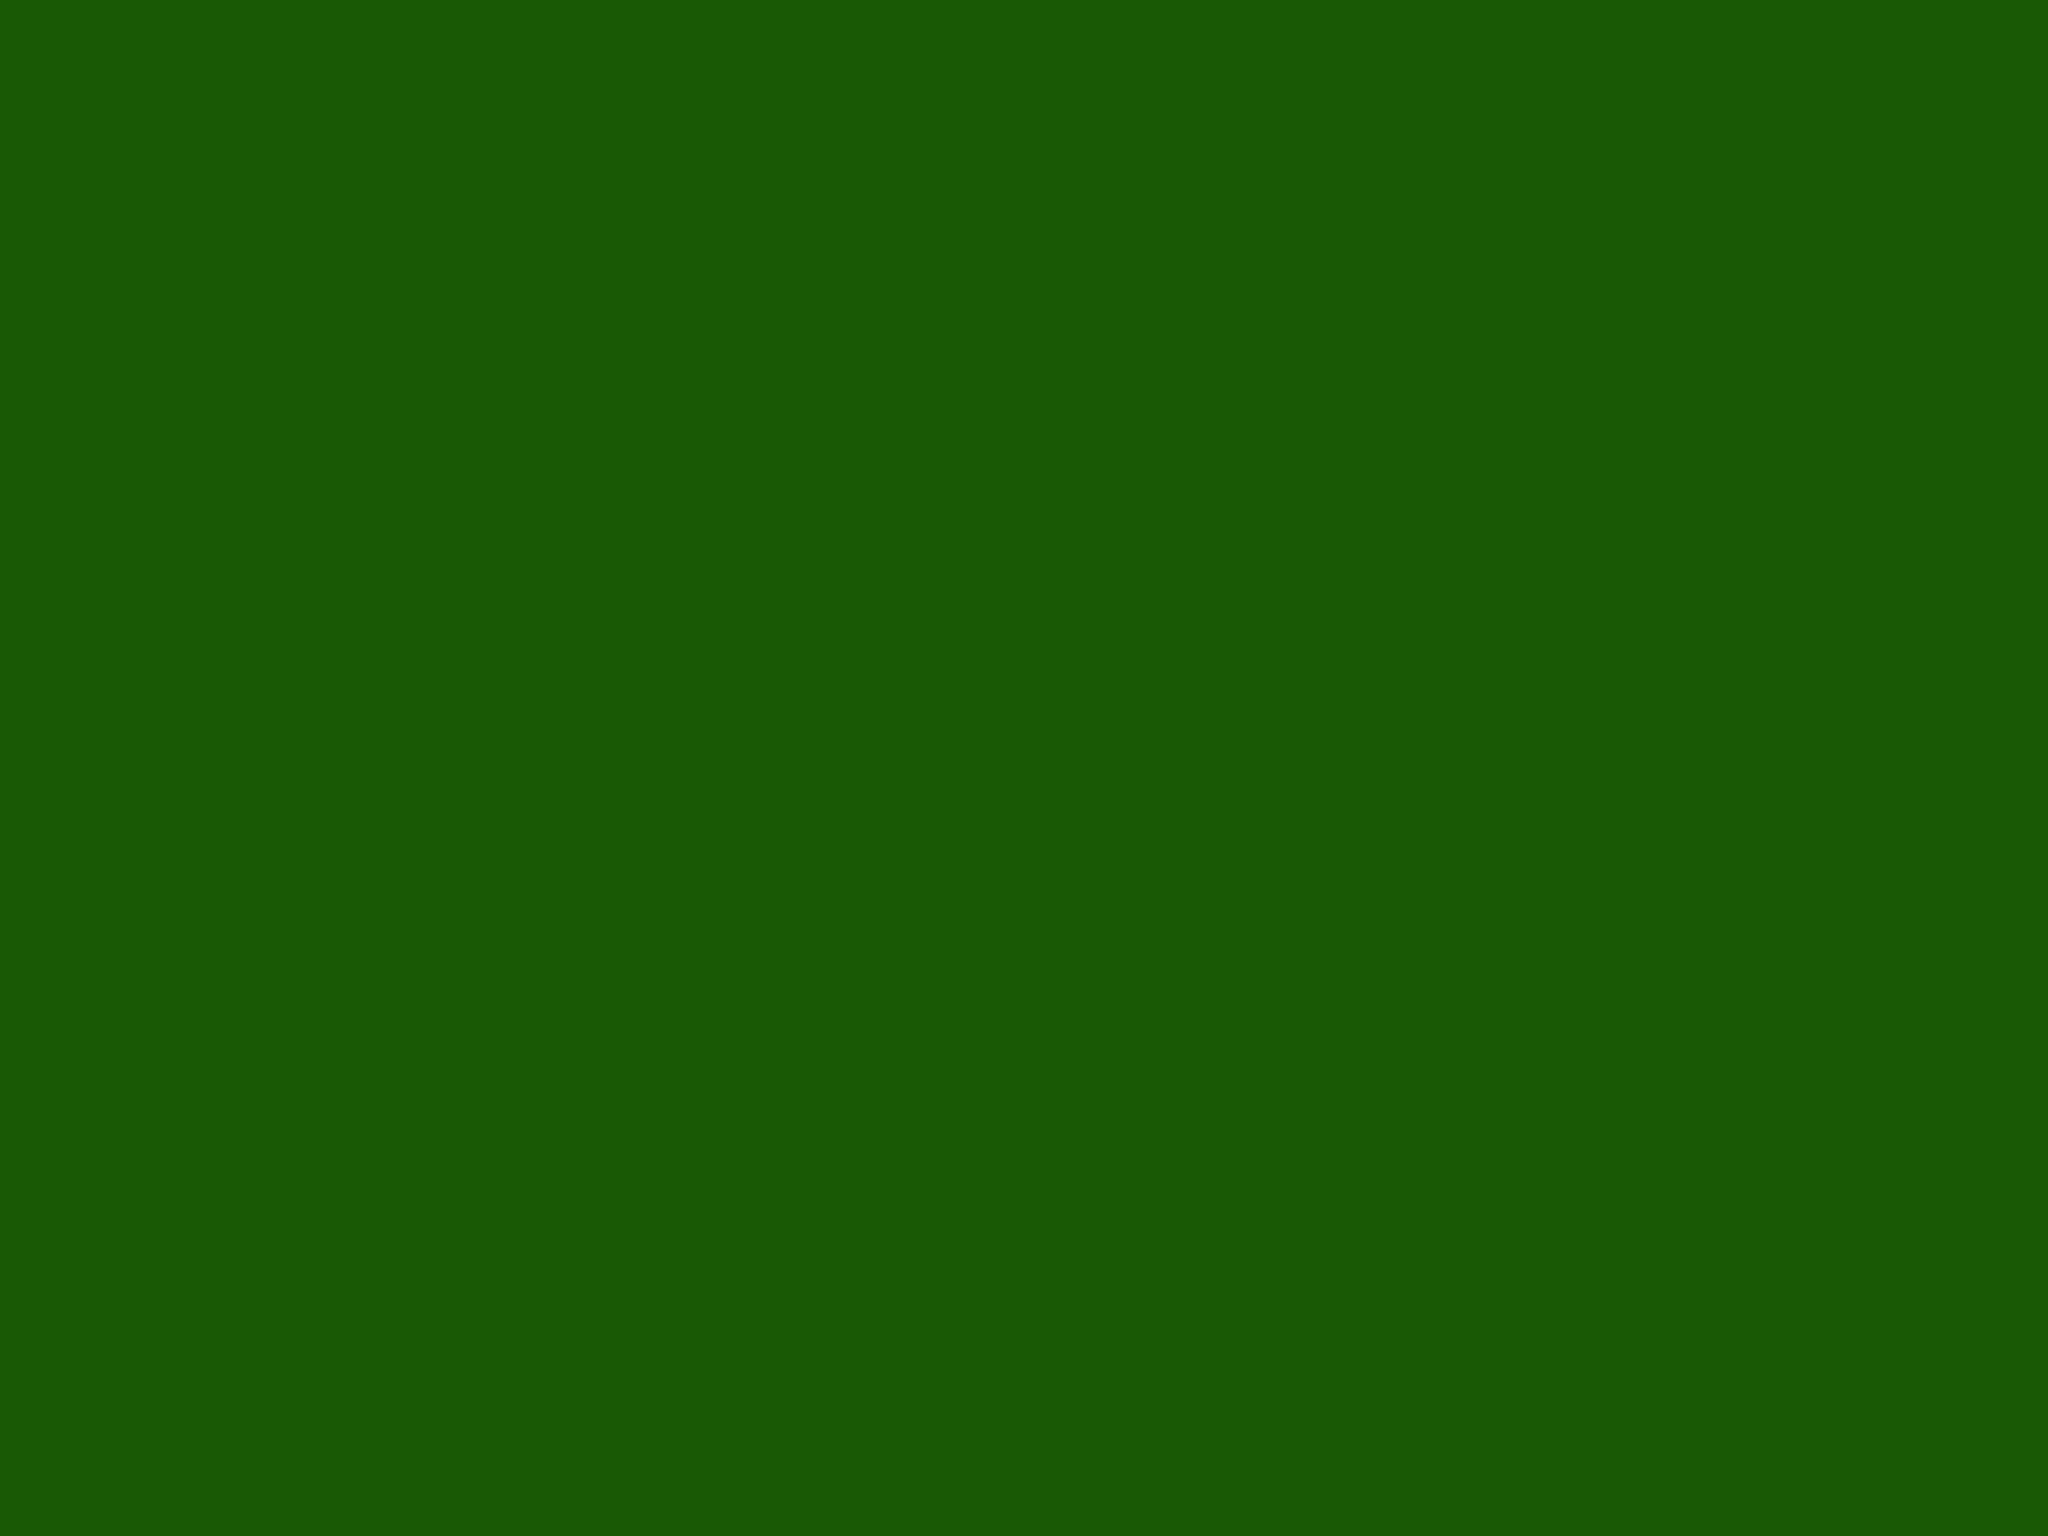 2048x1536 Lincoln Green Solid Color Background